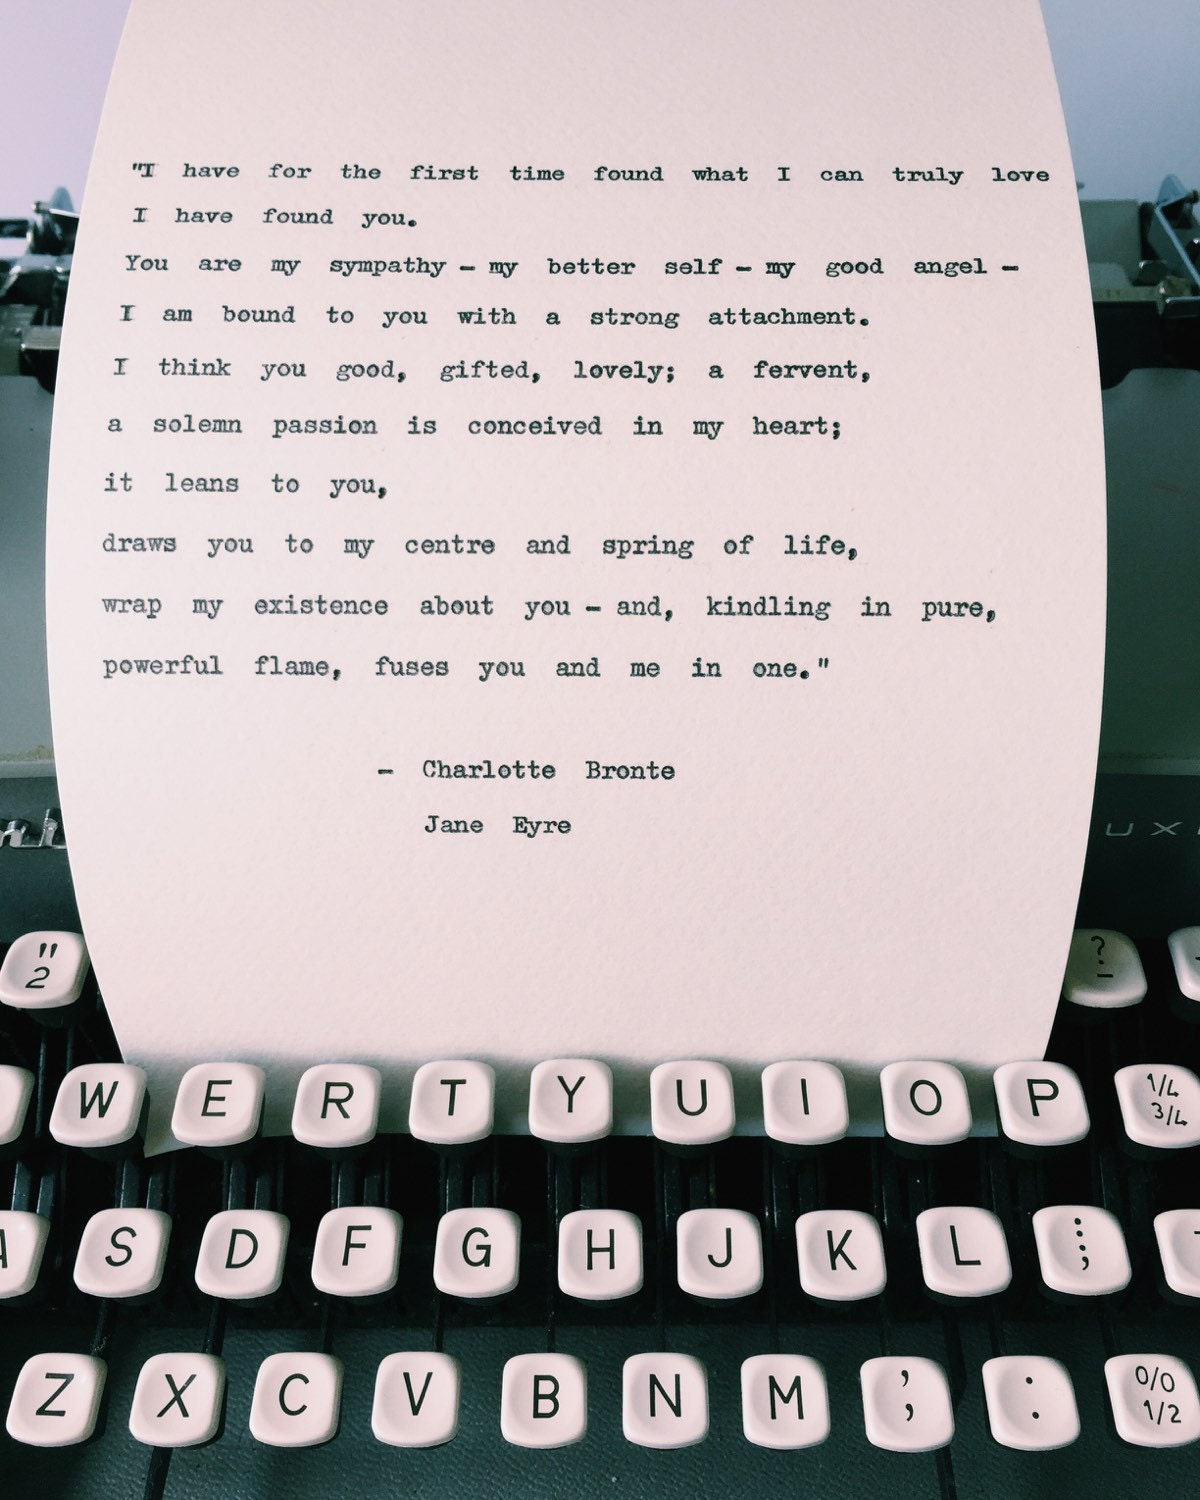 The Love I Have For You Quotes I Have Found You Quote Jane Eyre Typewriter Quote Charlotte